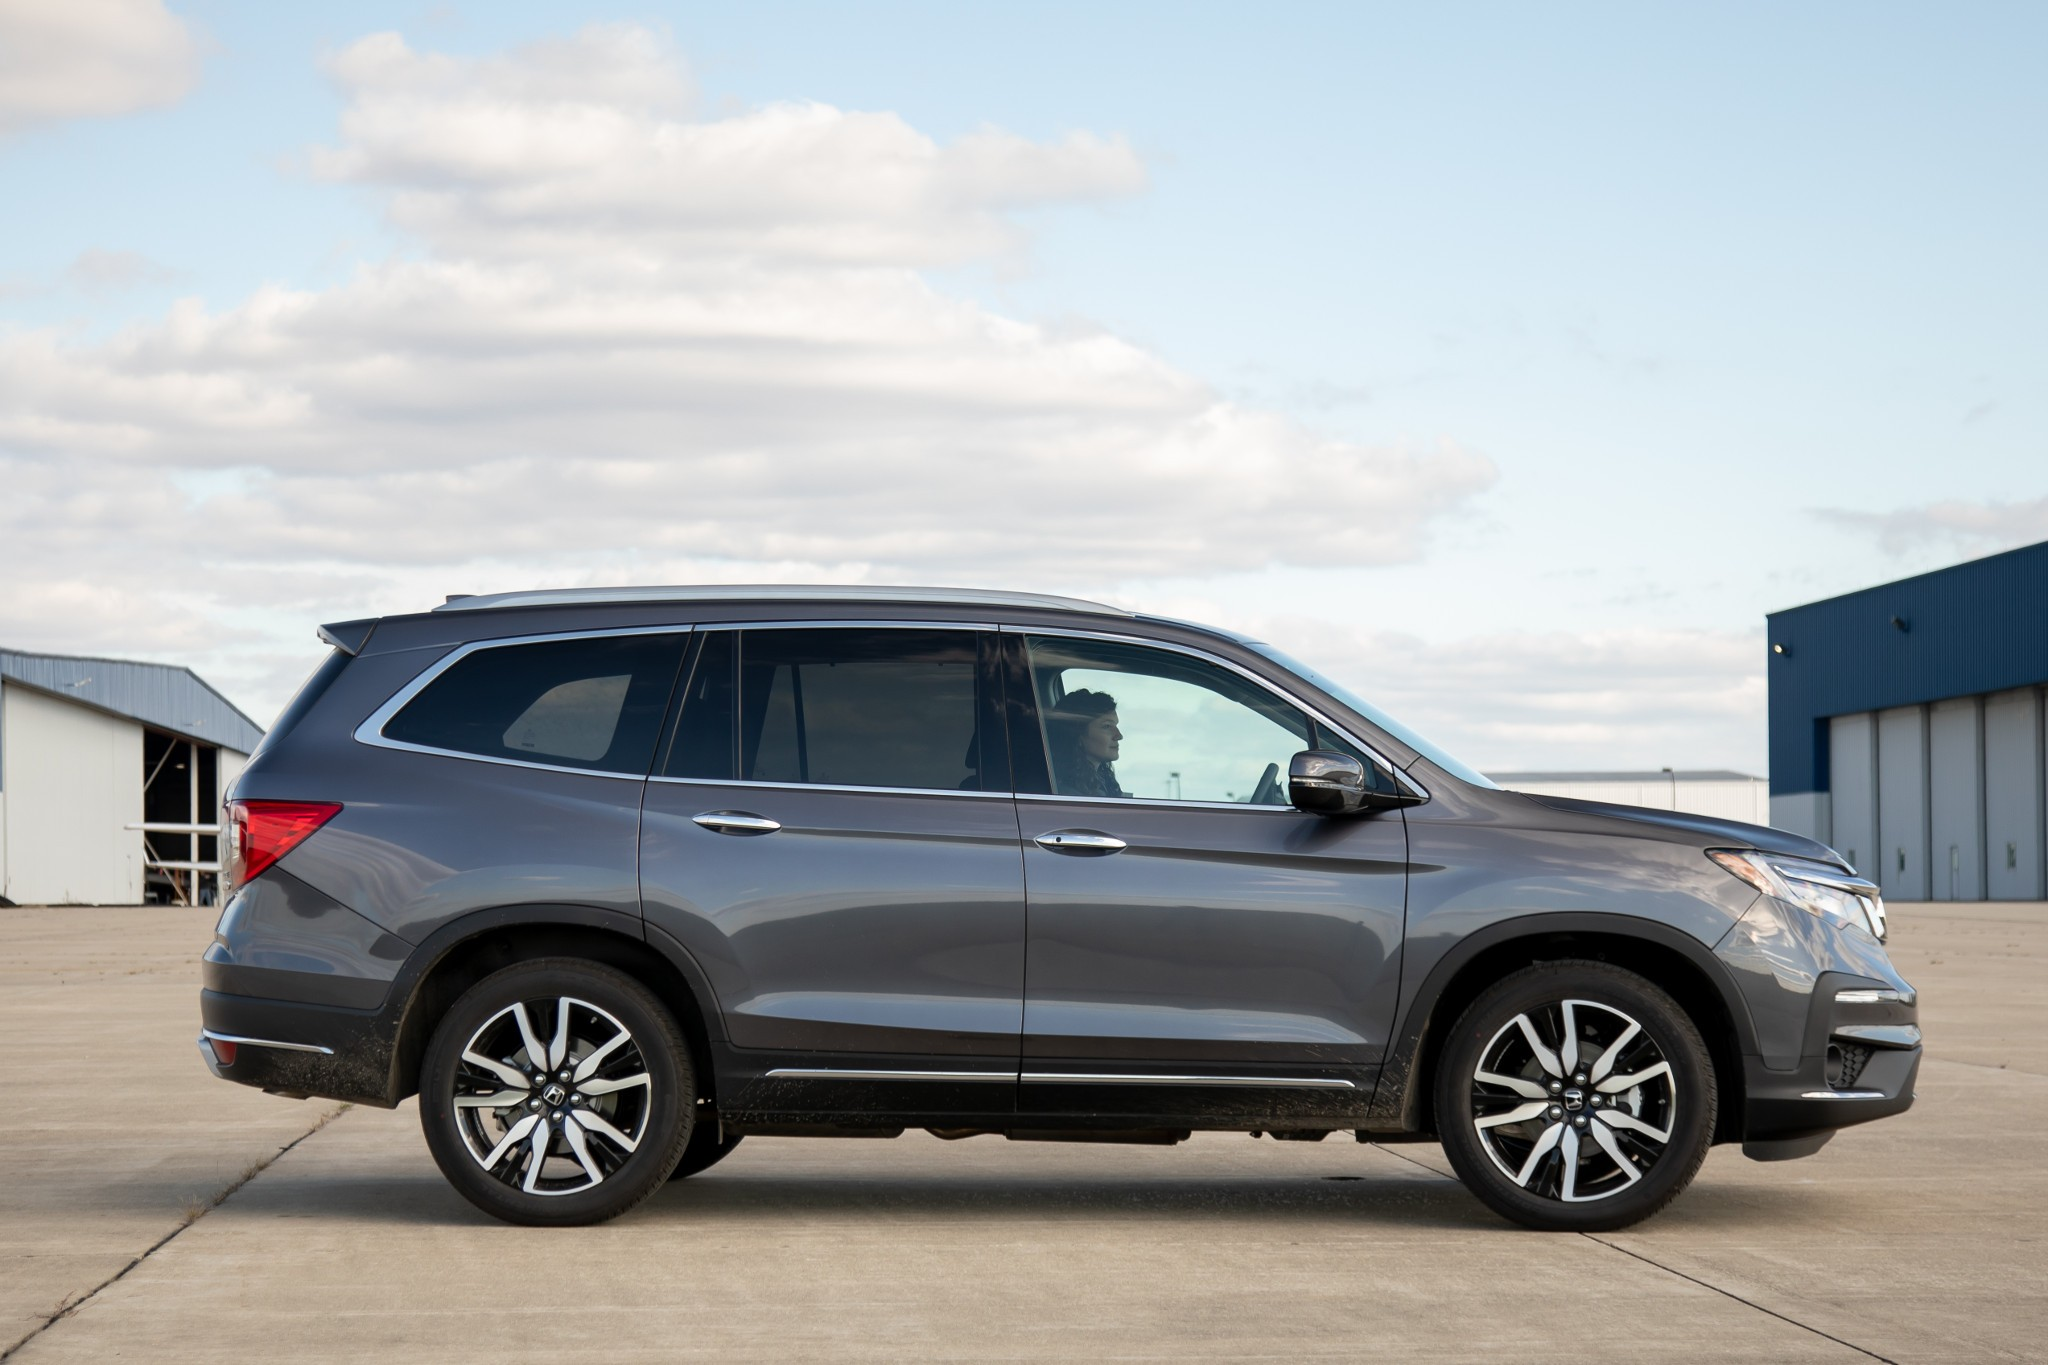 2019-2020 Honda Pilot: Everything You Need to Know